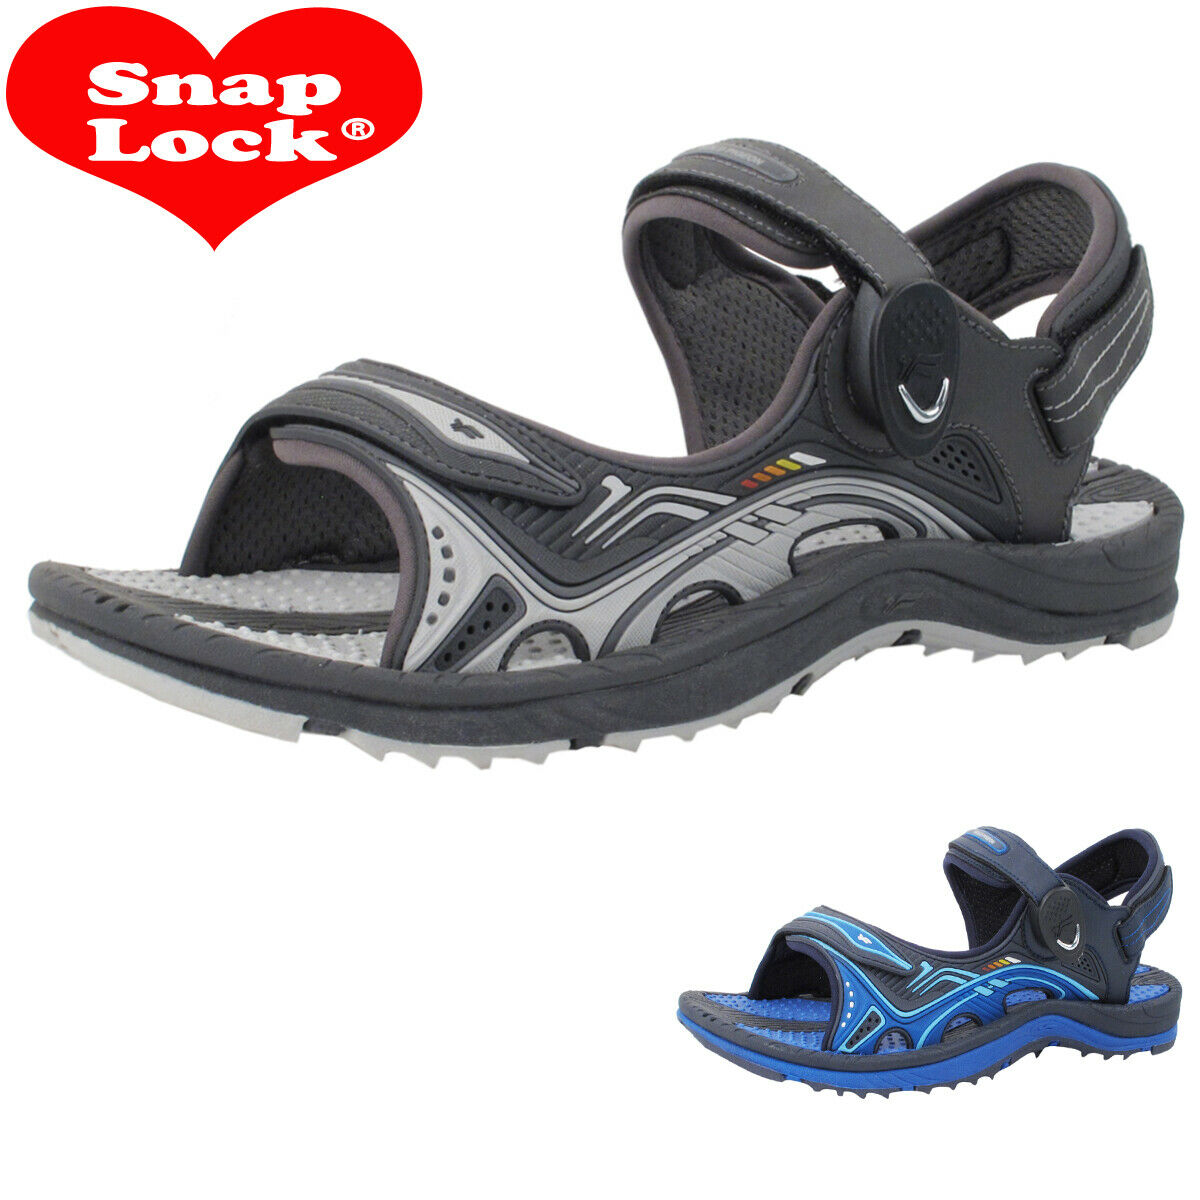 Comfort Cushion Arch Support Sandals for Men & Women by Gold Pigeon Shoes